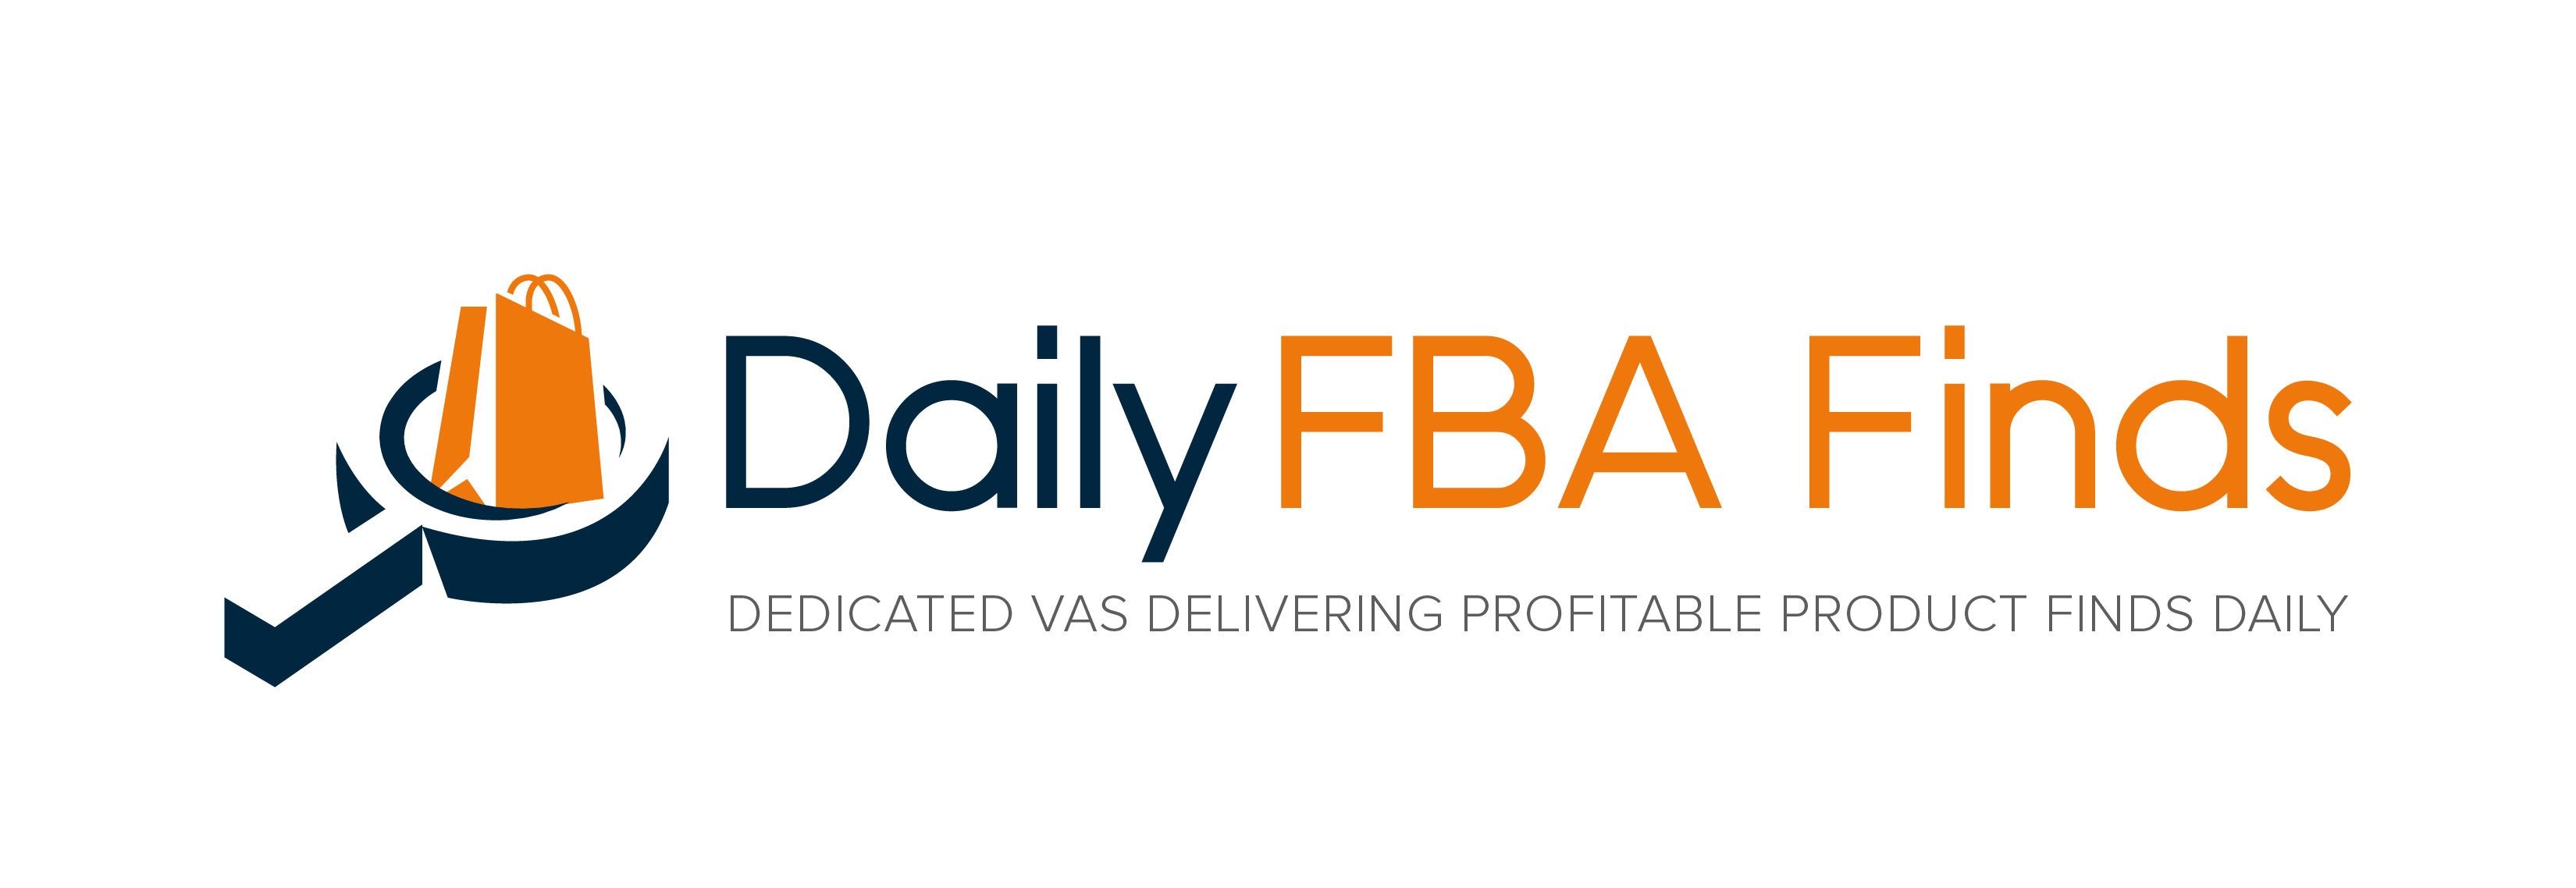 DailyFBAFinds_Logo_Final-02